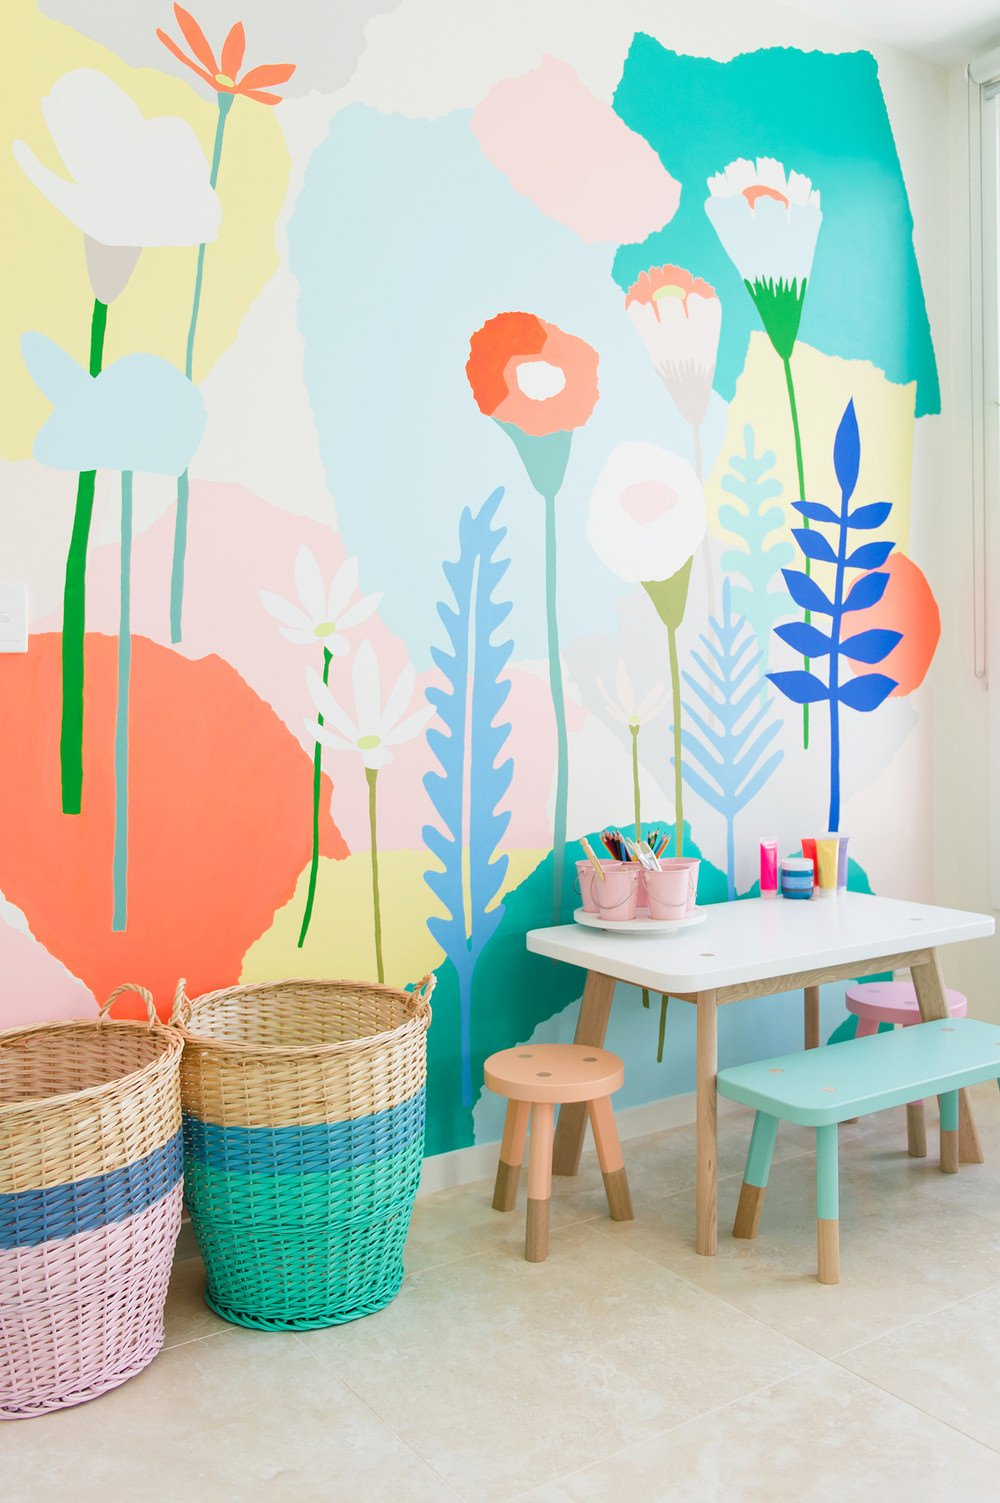 How to Paint Wall Murals for Kids - 9 Easy DIY Projects • The ...